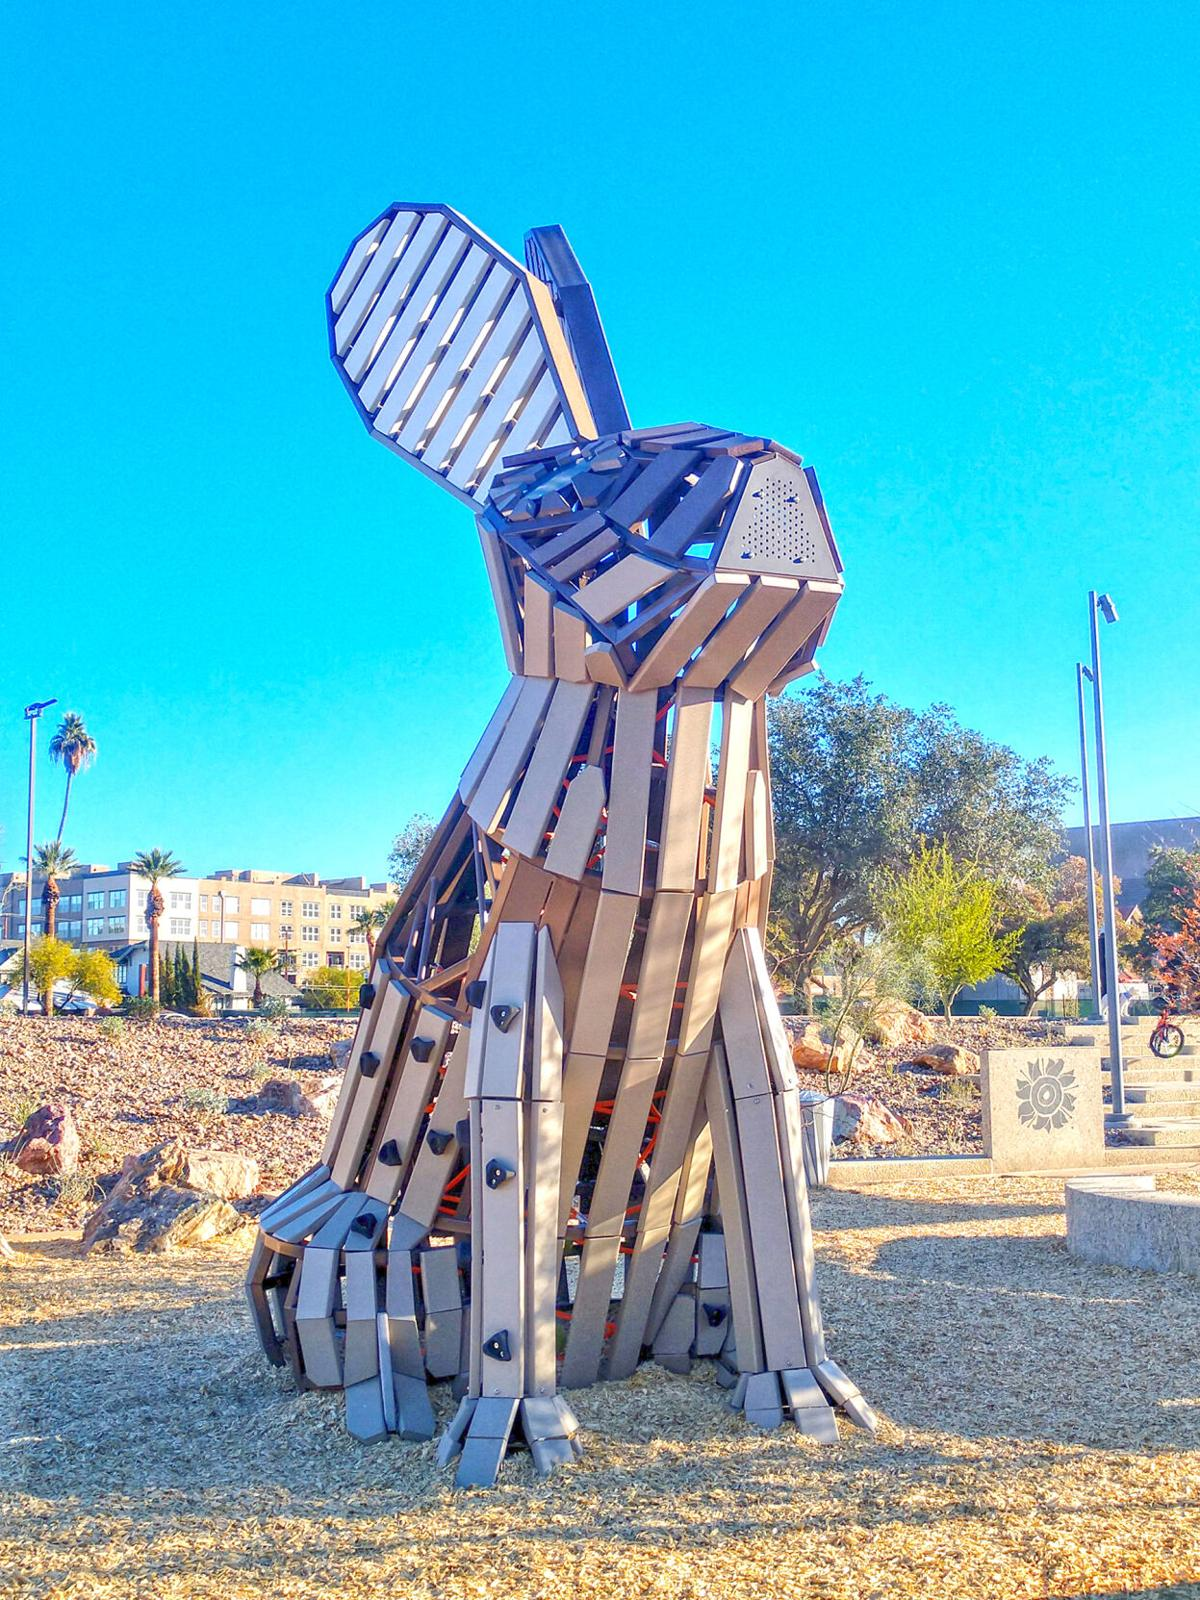 The Black-Tailed Jackrabbit play structure at Hance Park